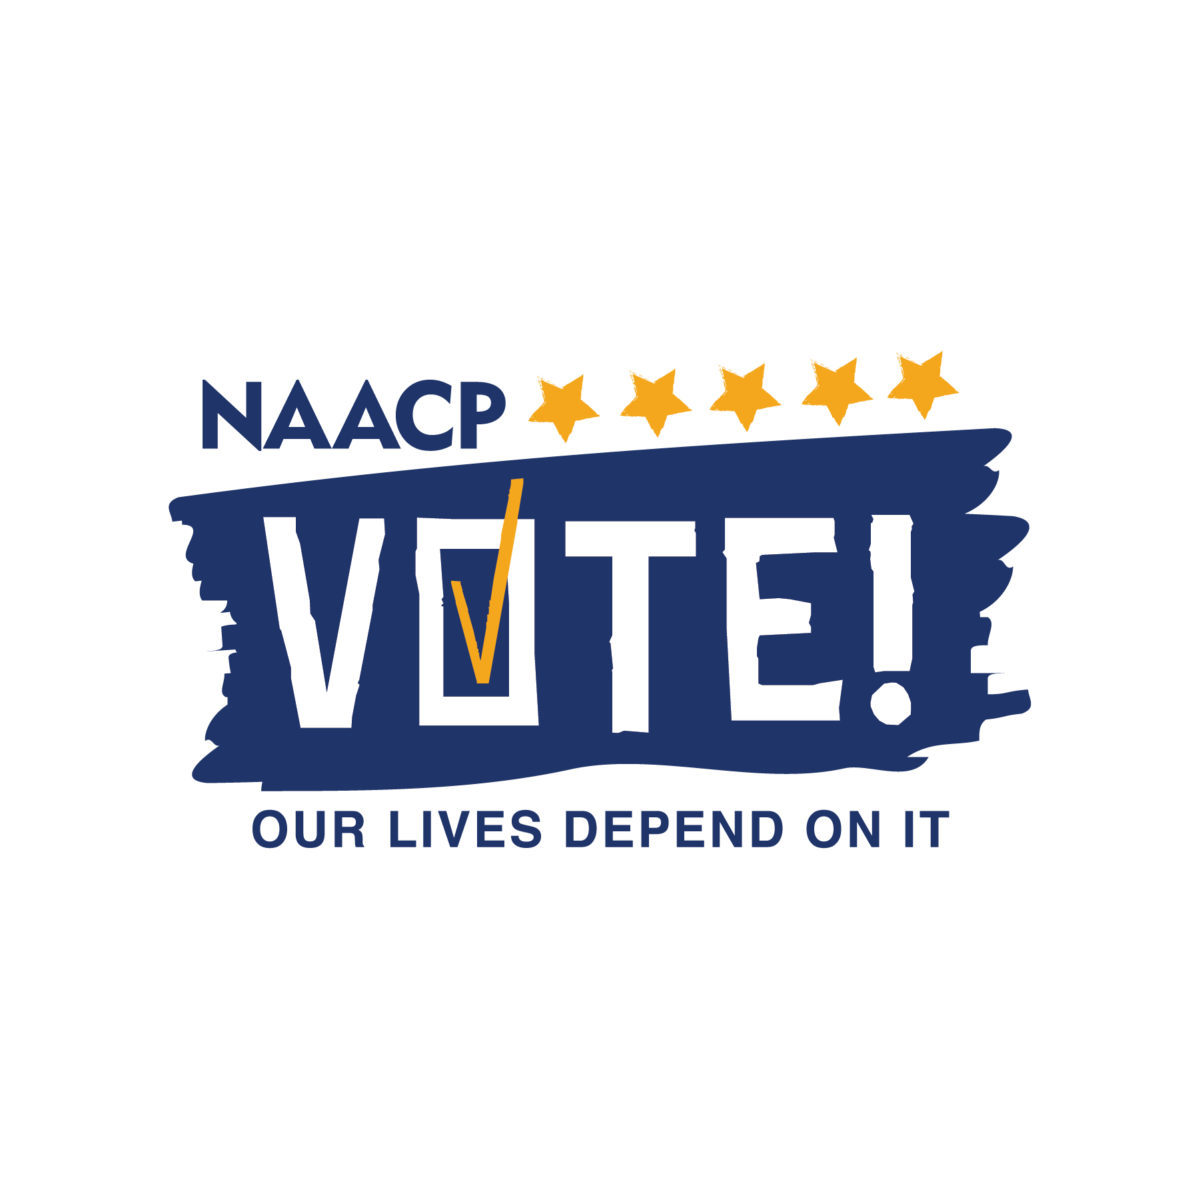 Vote! Our Lives Depend On It. NAACP